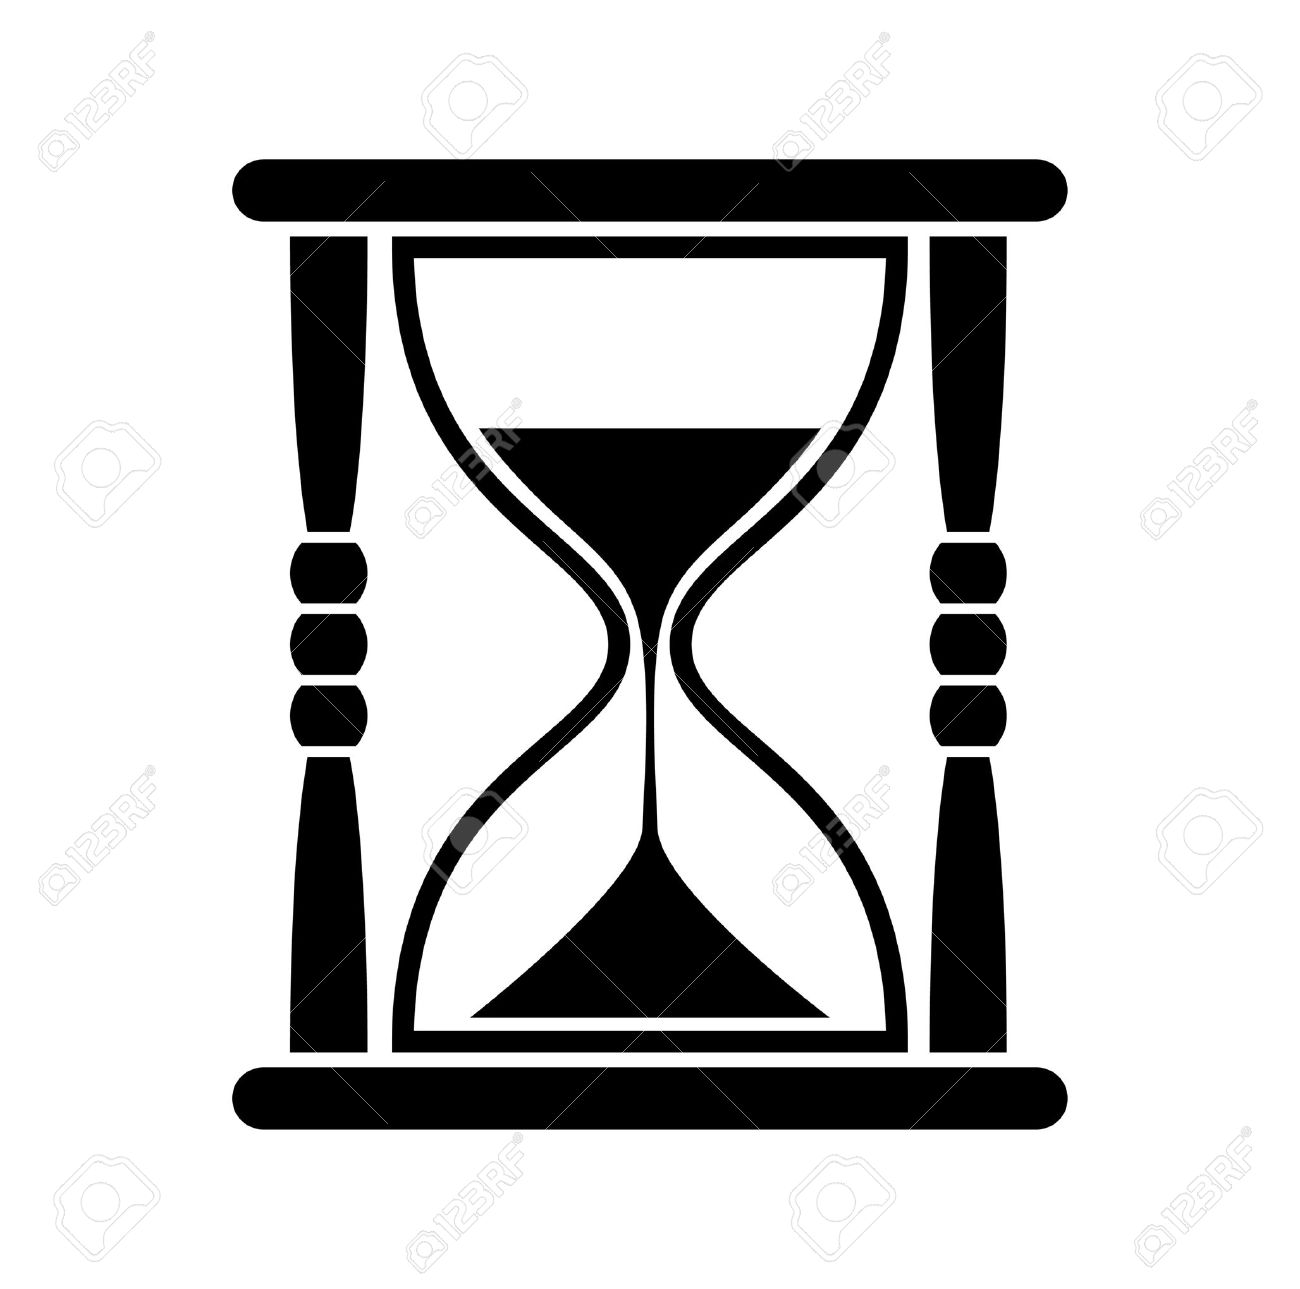 Hourglass icon  Hourglass Icon Royalty Free Cliparts, Vectors, And Stock ...